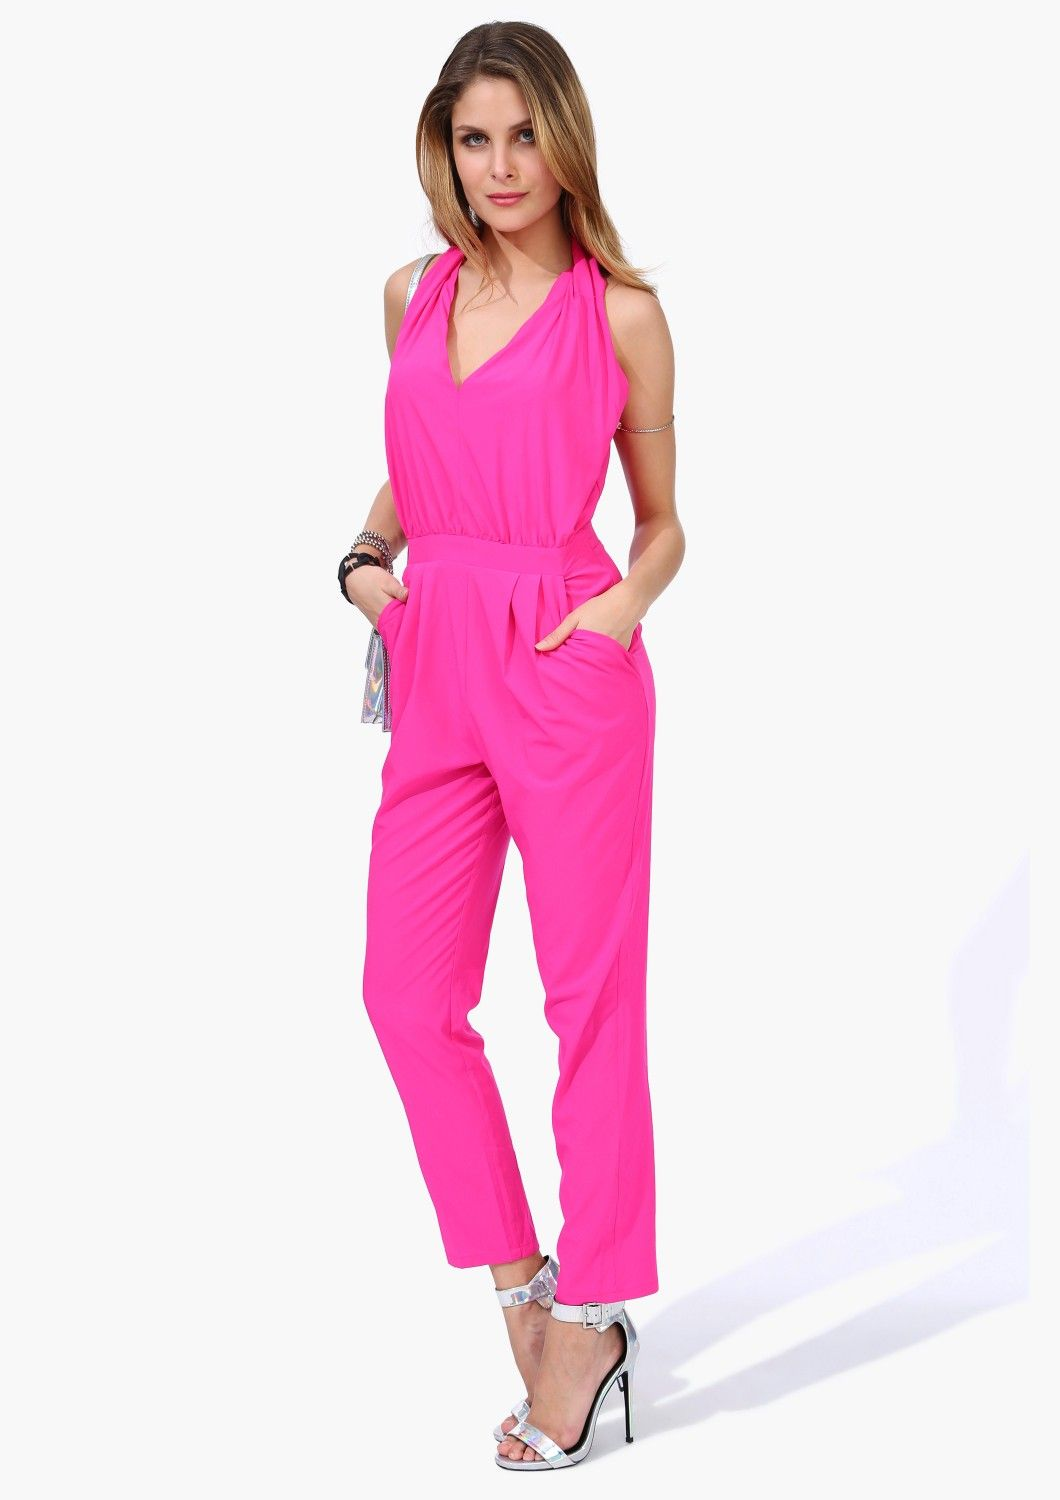 Bright one piece. A v neckline with loose fit. | Clothing and Style ...